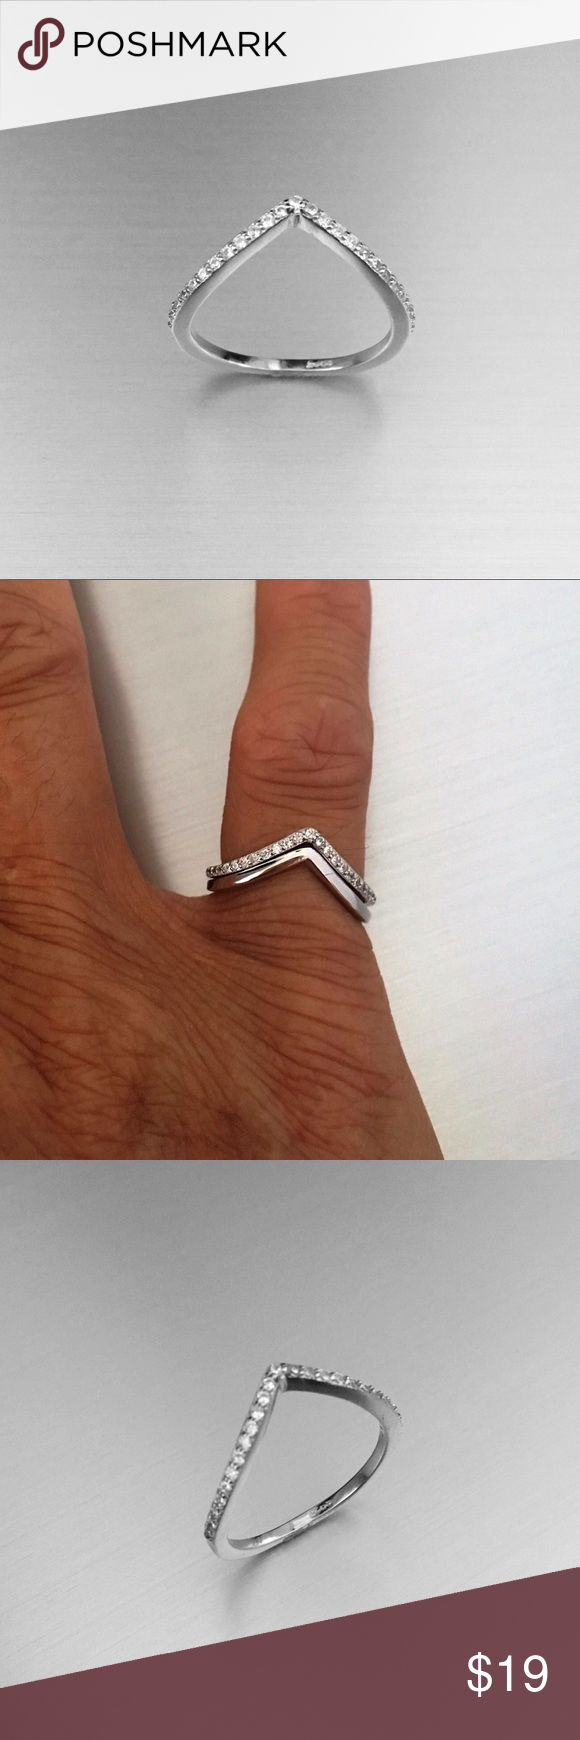 Sterling Silver V Shape CZ 💎Ring Sterling Silver V Shape CZ Ring 💍 Stackable Ring 💍 Midi Ring 💍 Pinky Ring 💍 Index Ring 💍 Thumb Ring 💍 925 Sterling Silver 💍Face Height 2 mm 💍 Stone Clear CZ 💎, PLAIN V SHAPE SOLD SEPARATELY! Jewelry Rings